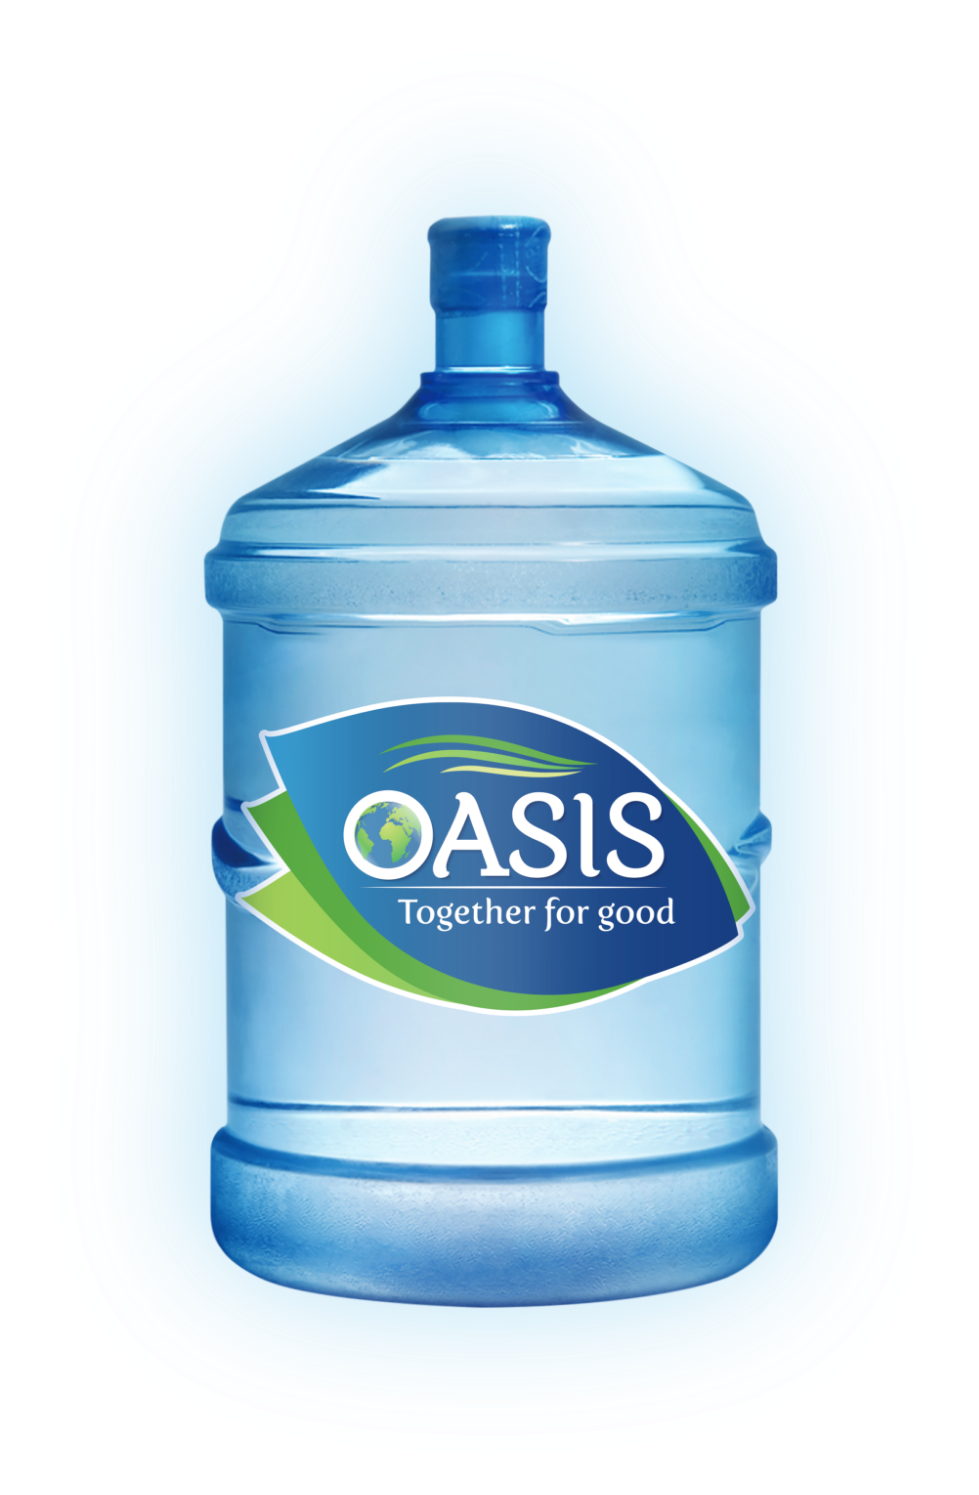 Our Oasis – Together for Good